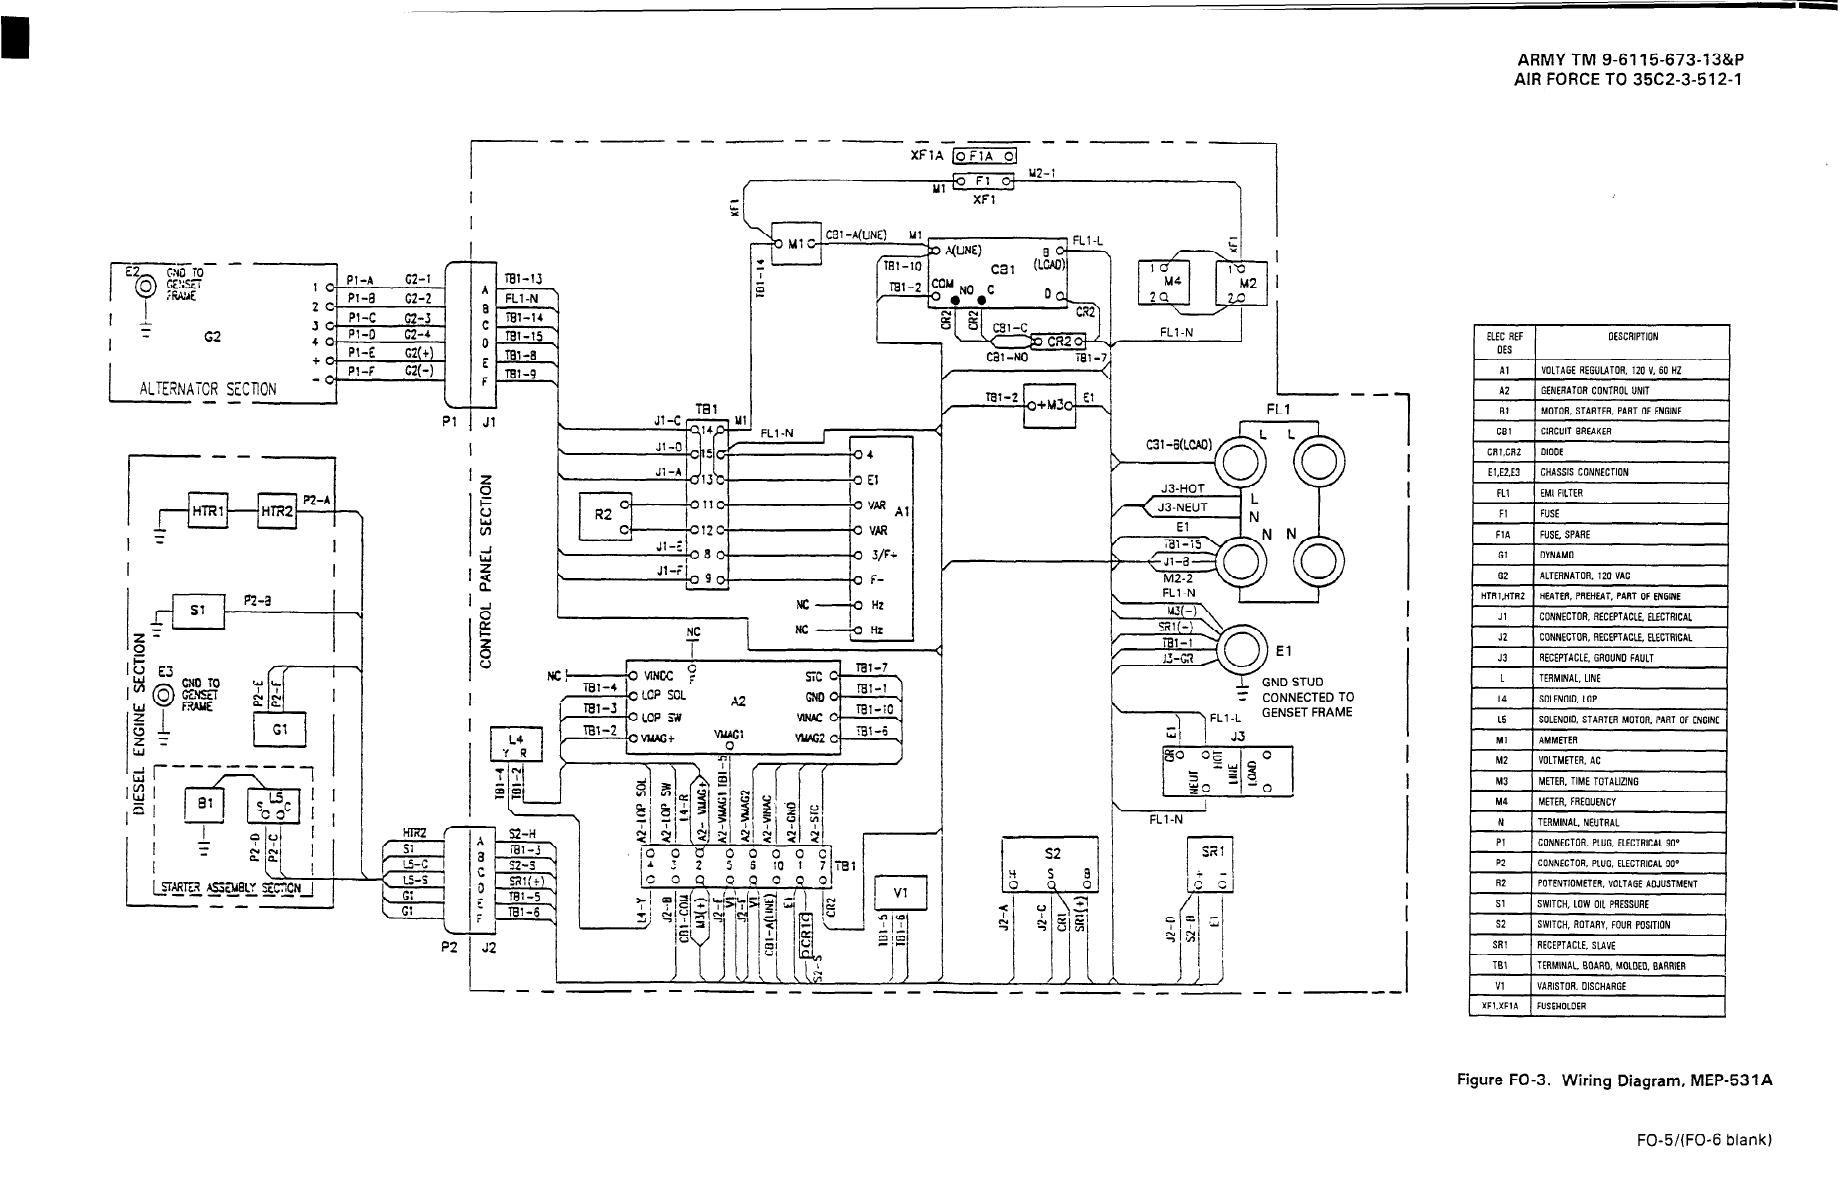 Figure Fo 3 Wiring Diagram Mep 531a